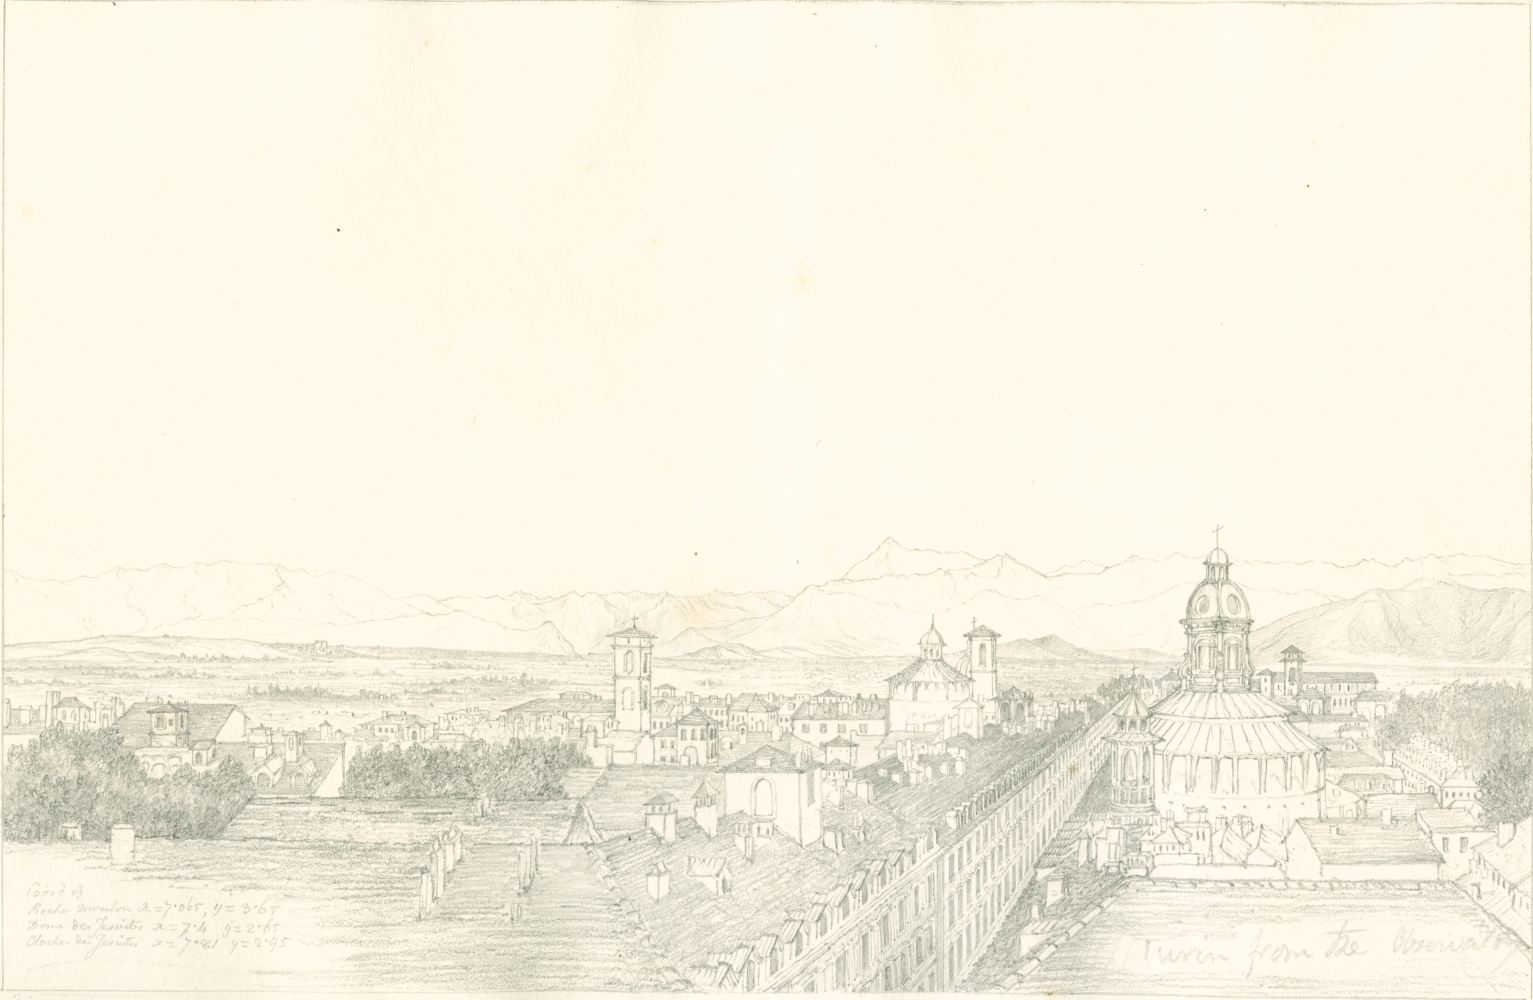 """Sir John Frederick William HERSCHEL (English, 1792-1872) """"No 351 Turin with the chain of the Alps. From the roof of the Observatory"""", 1824 Camera lucida drawing, pencil on paper"""